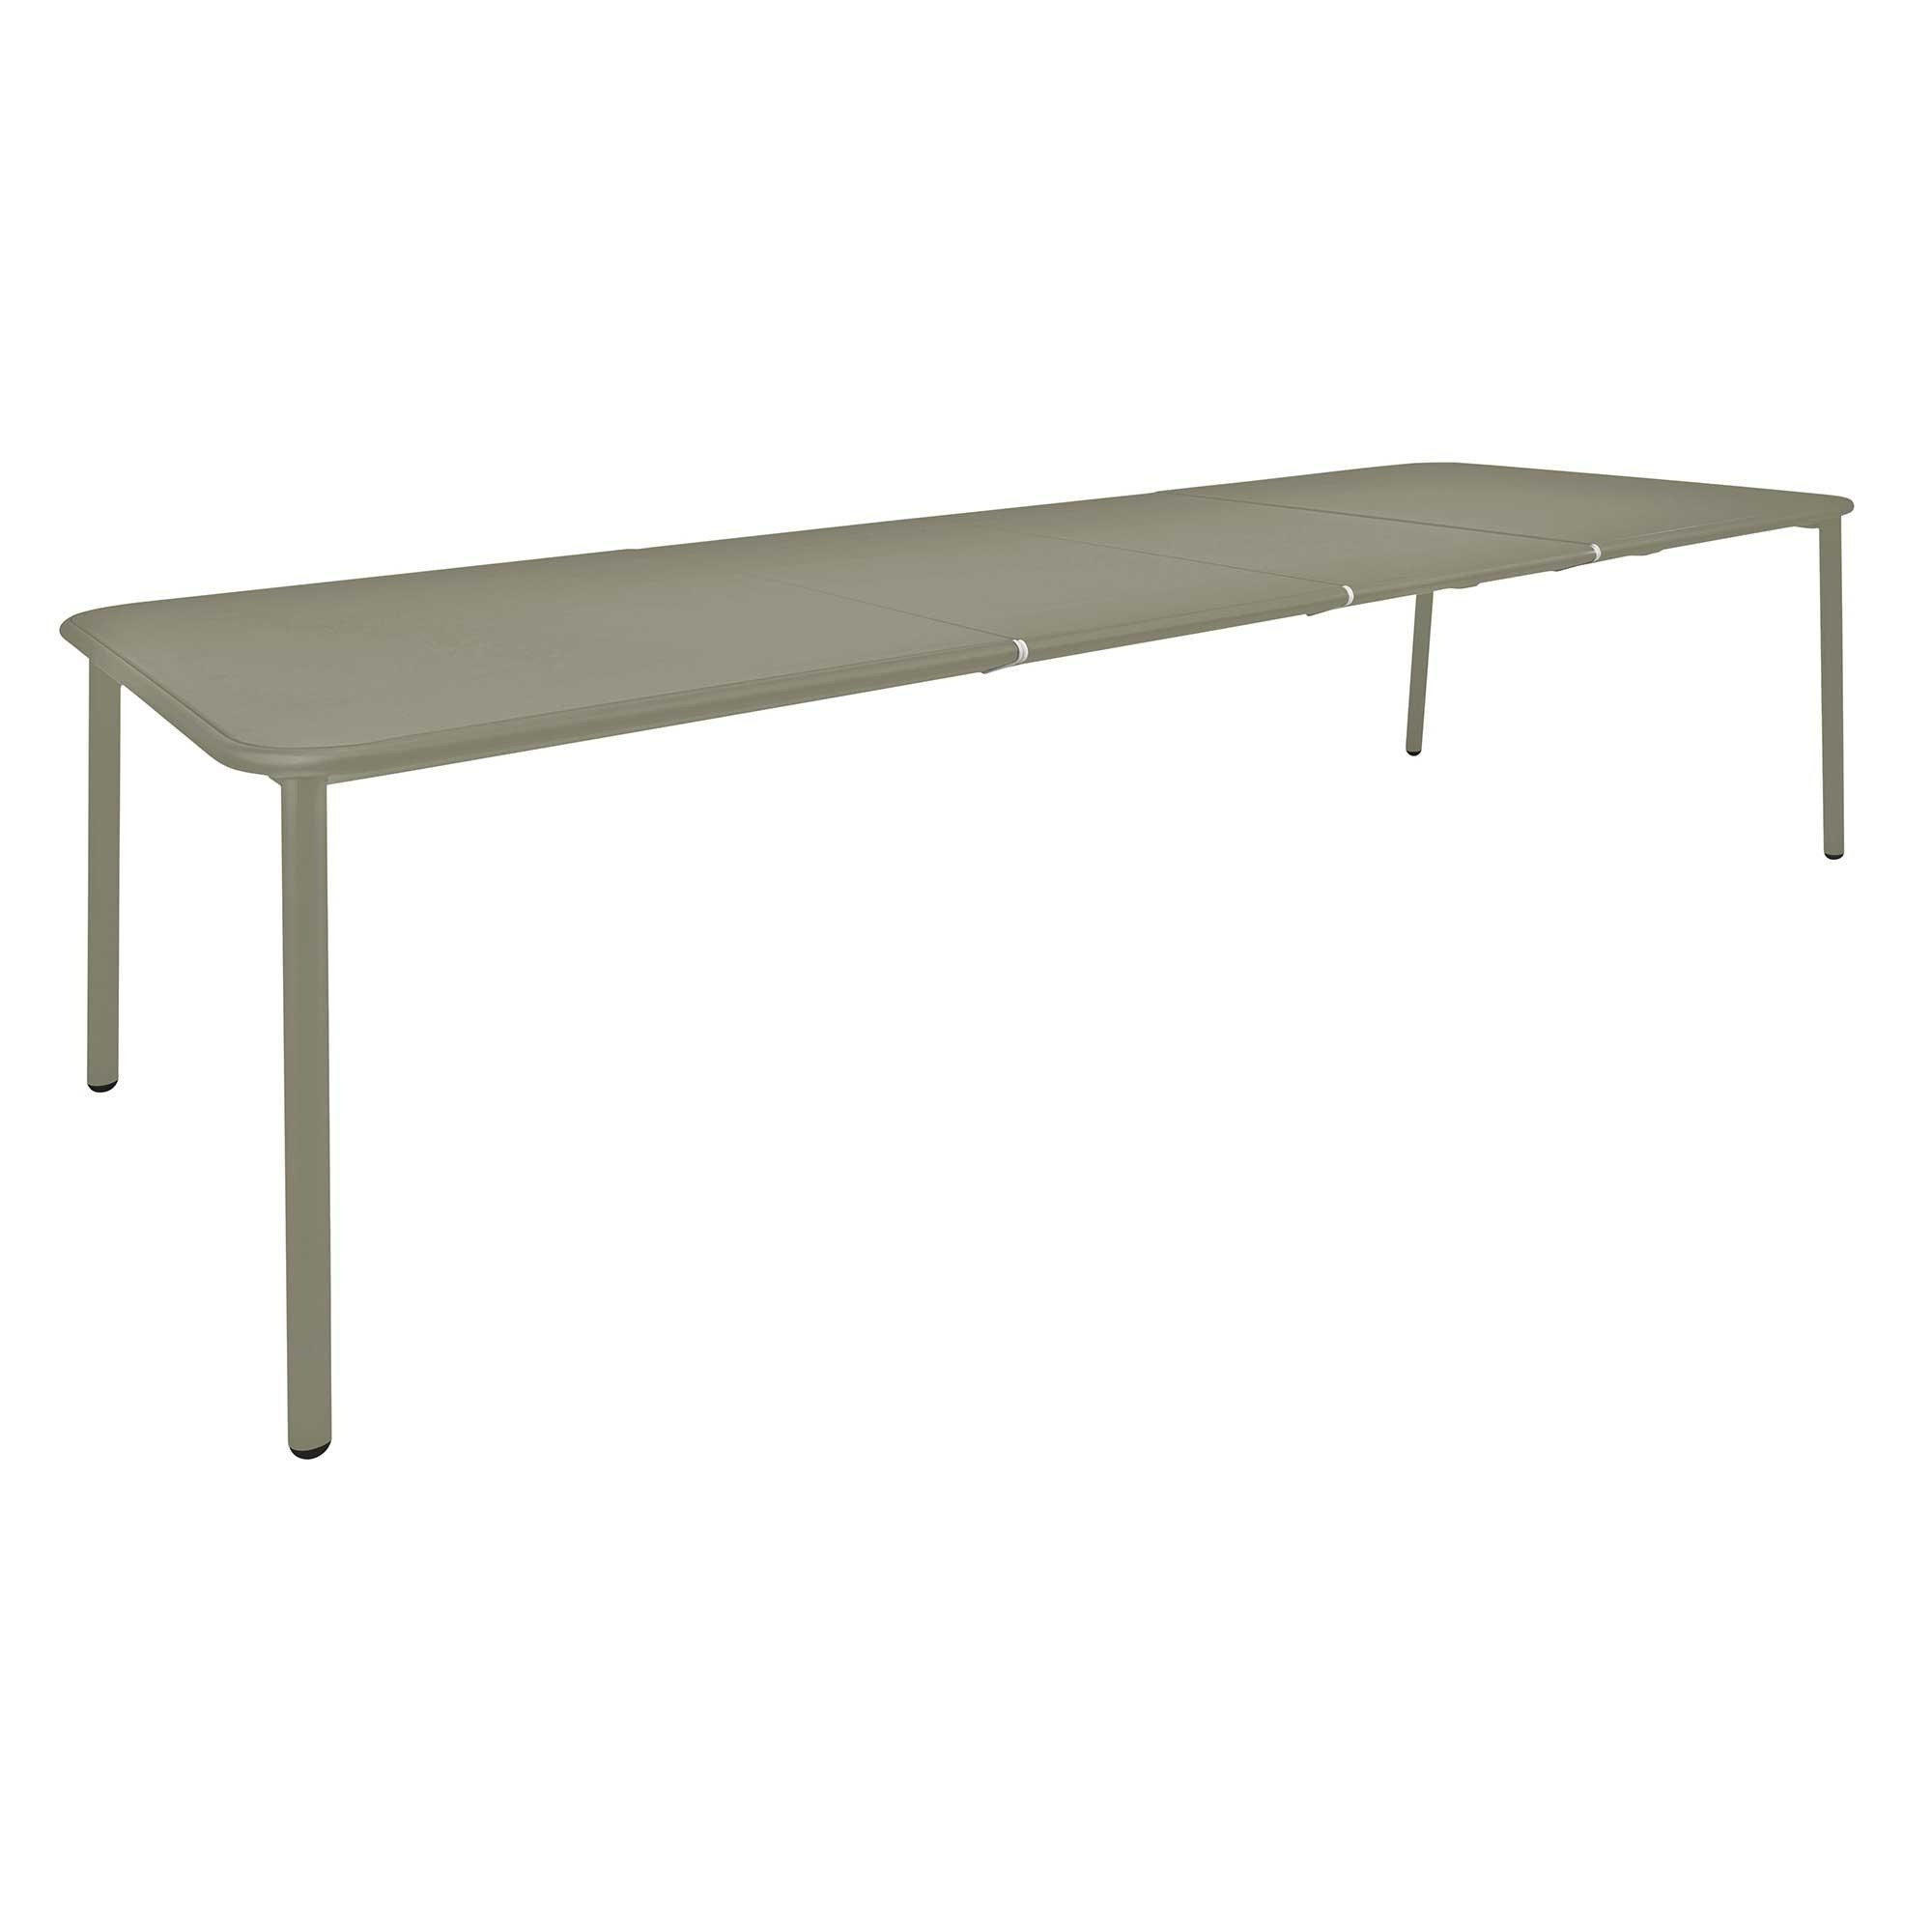 Table de jardin extensible de aluminium Yard